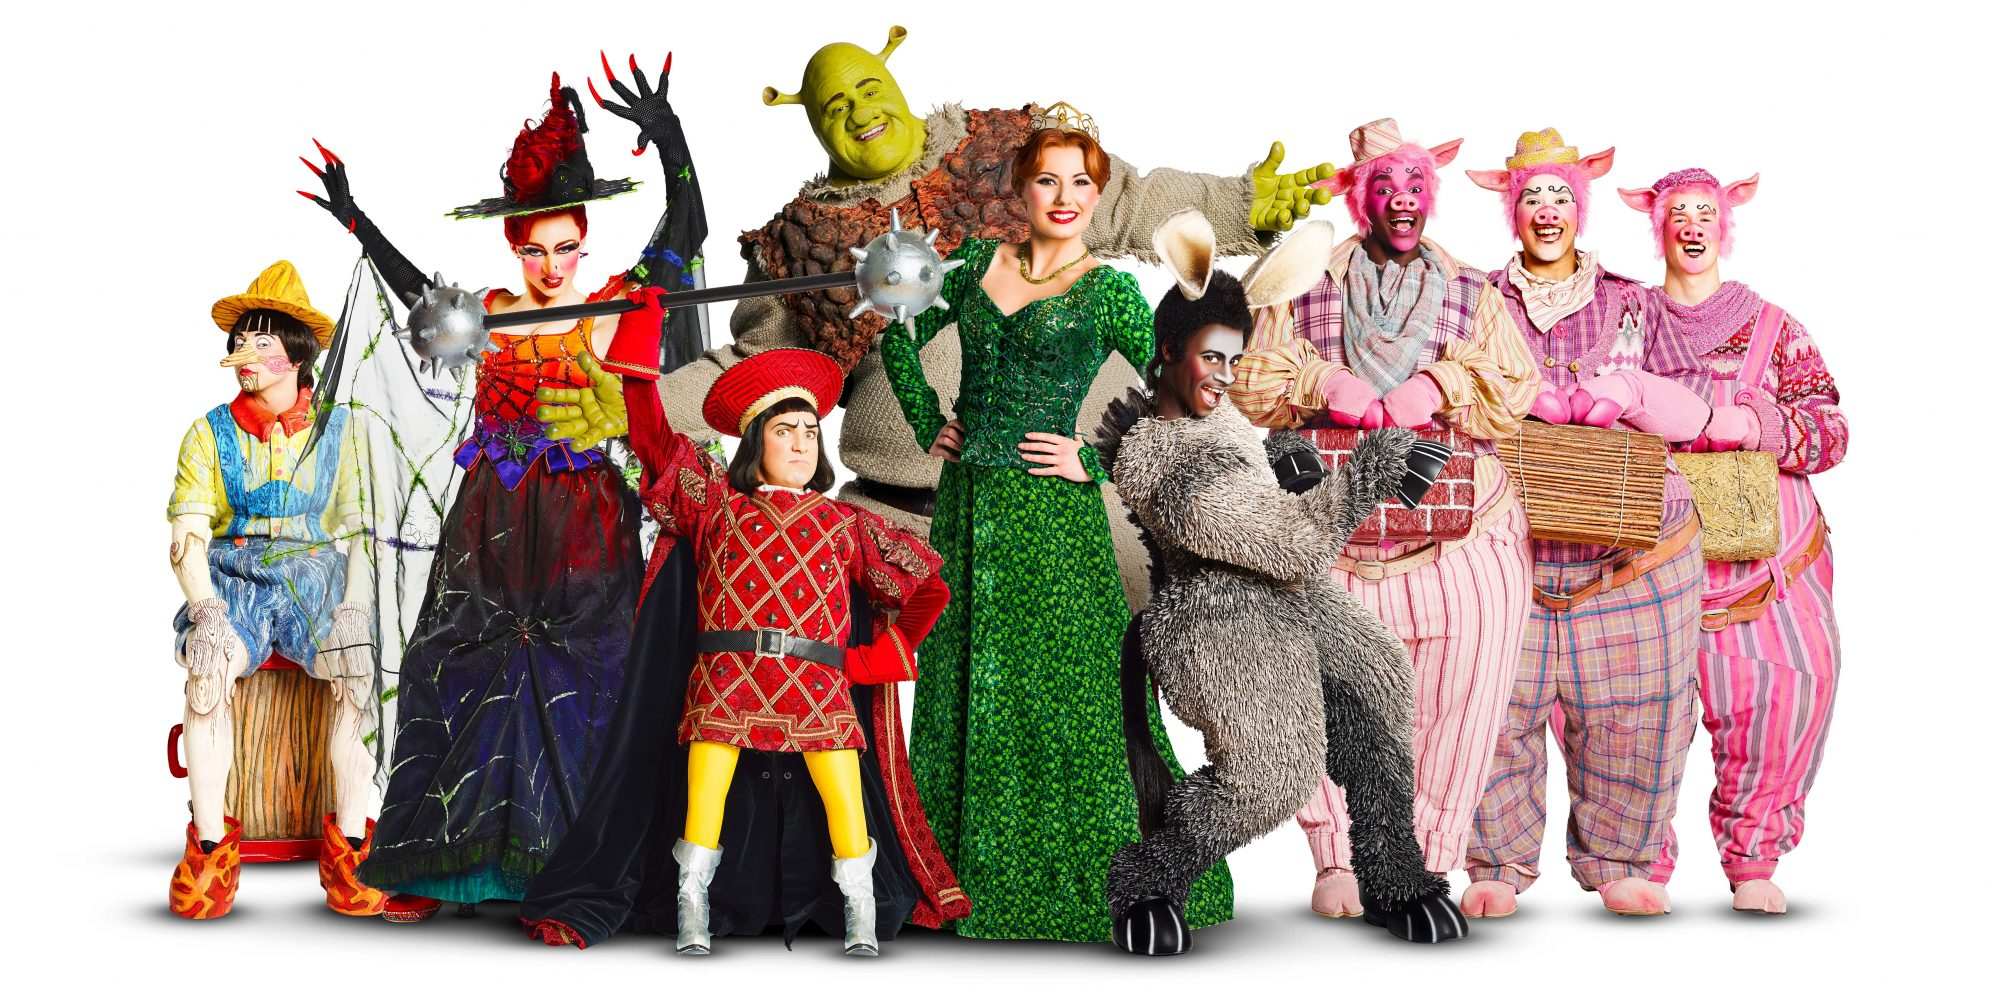 Shrek_web-2000x1000